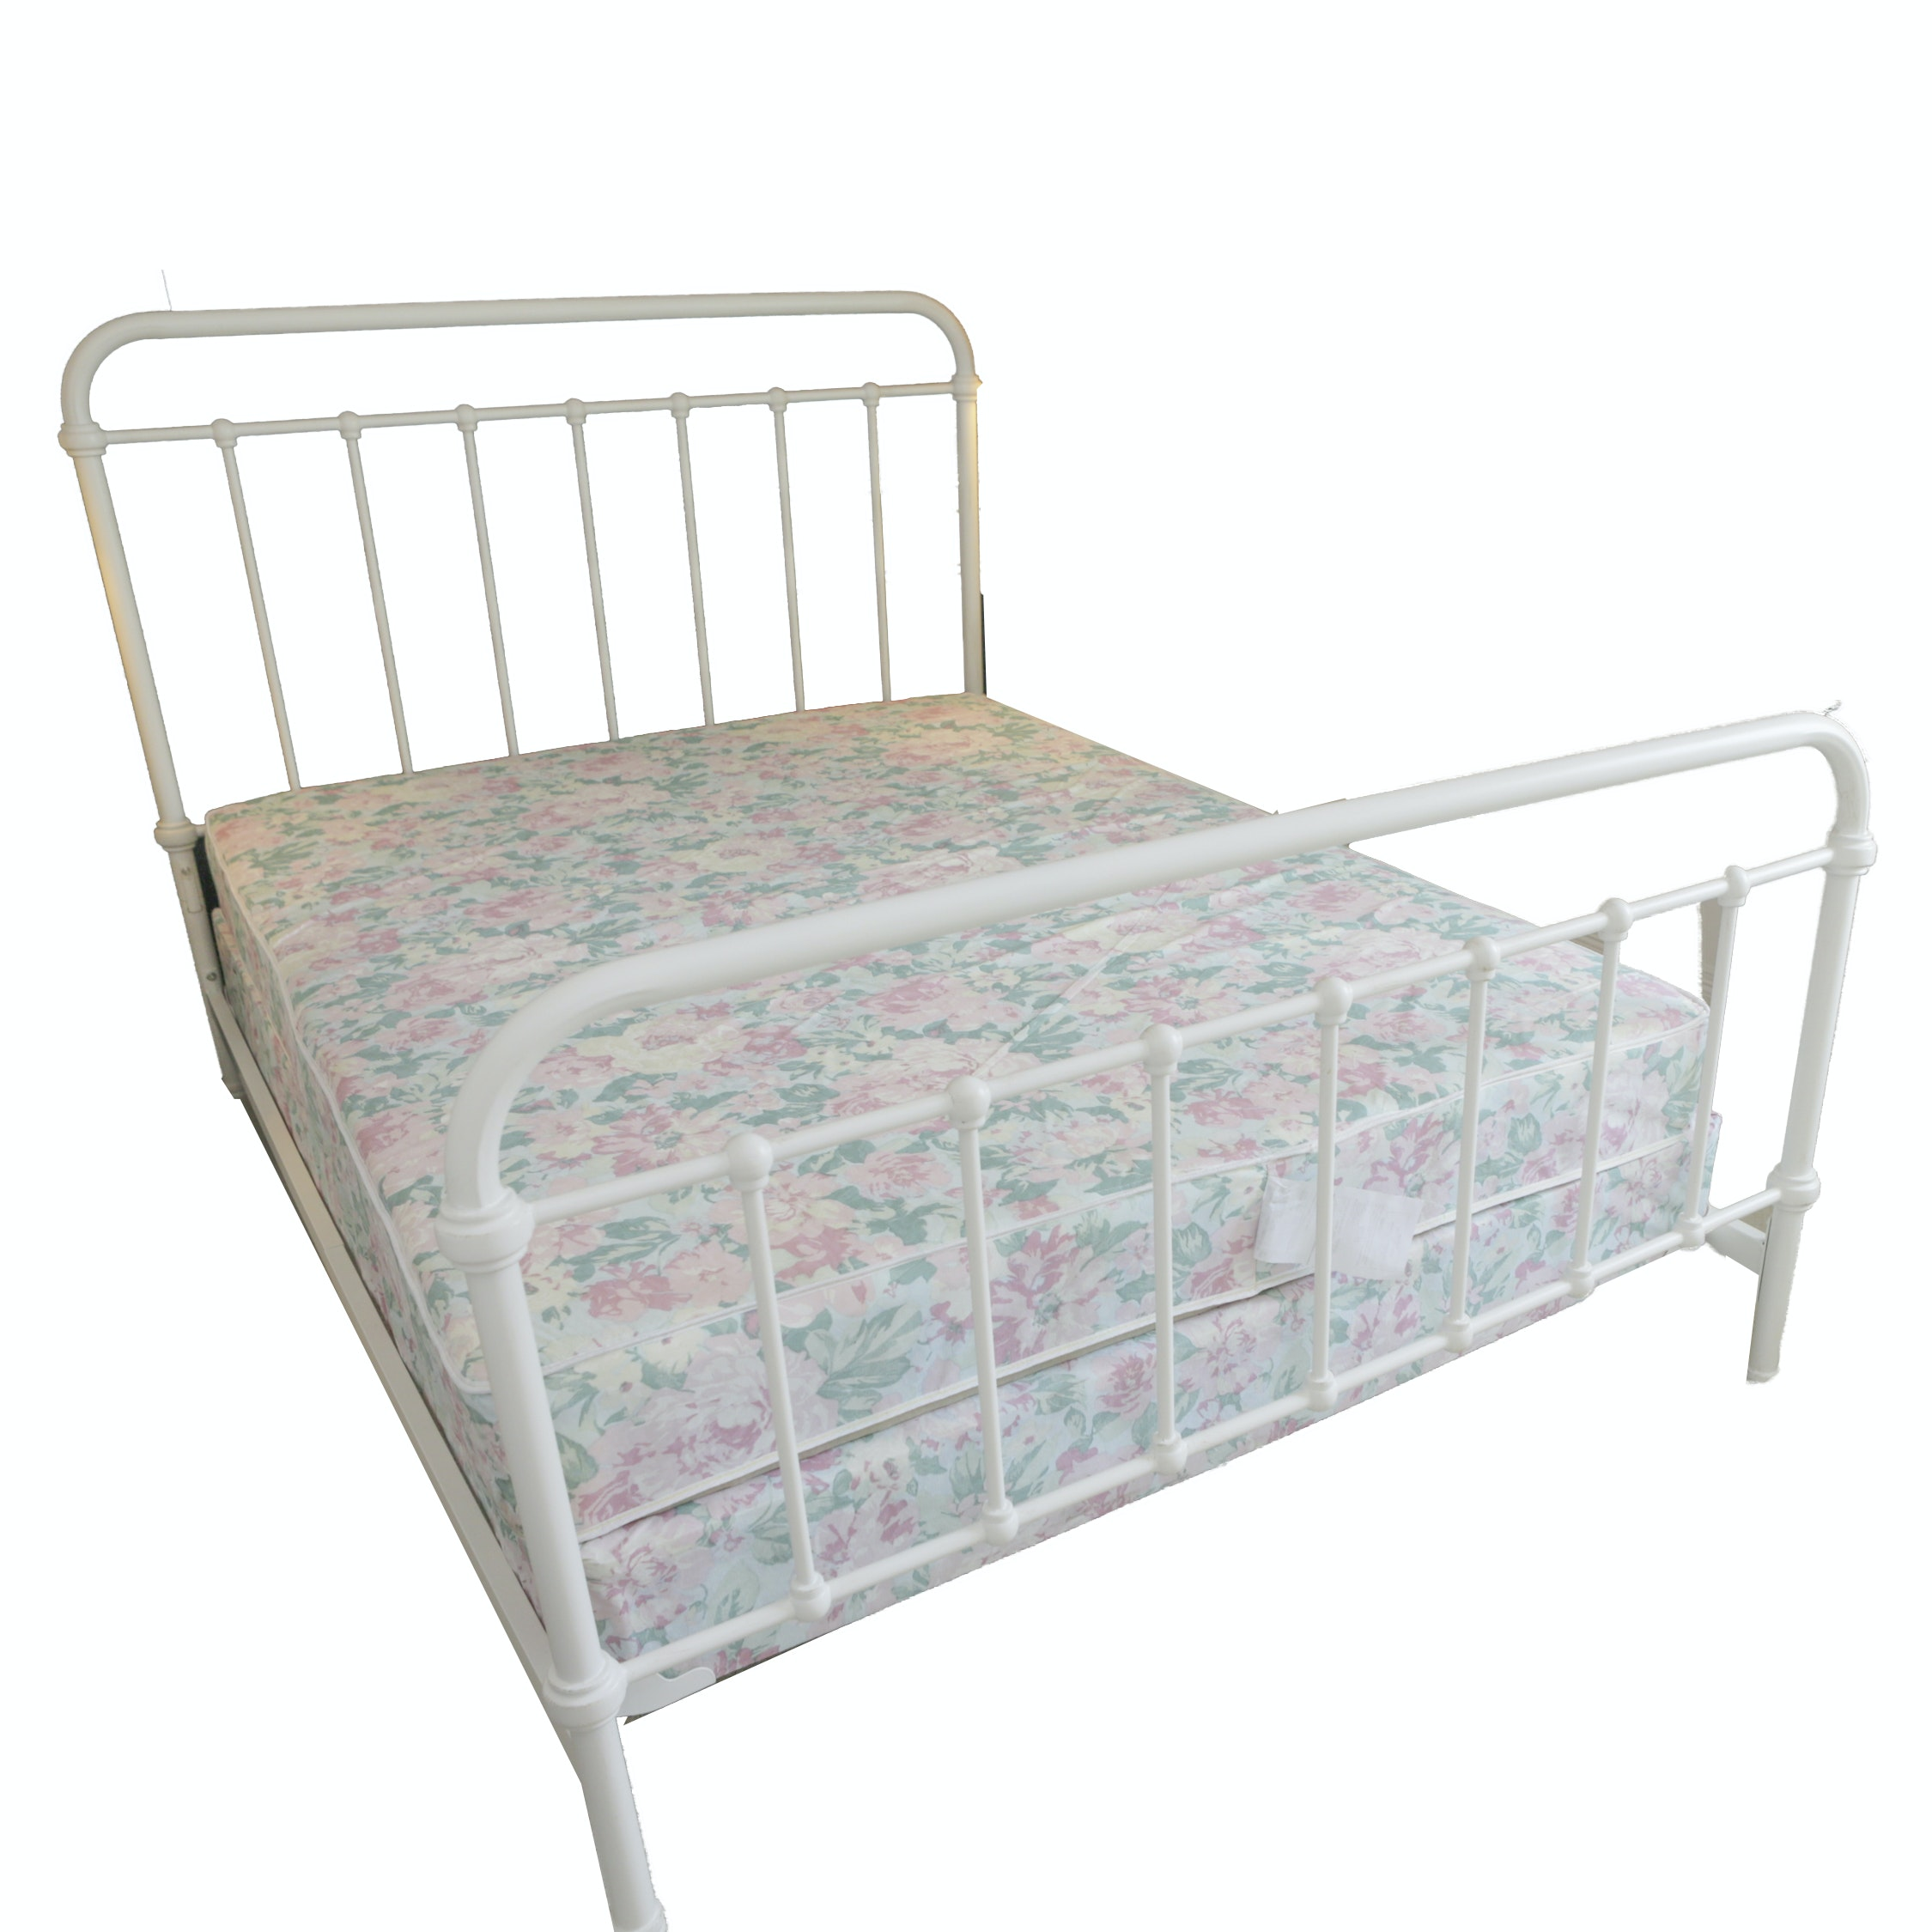 White Metal Queen Size Bed Frame